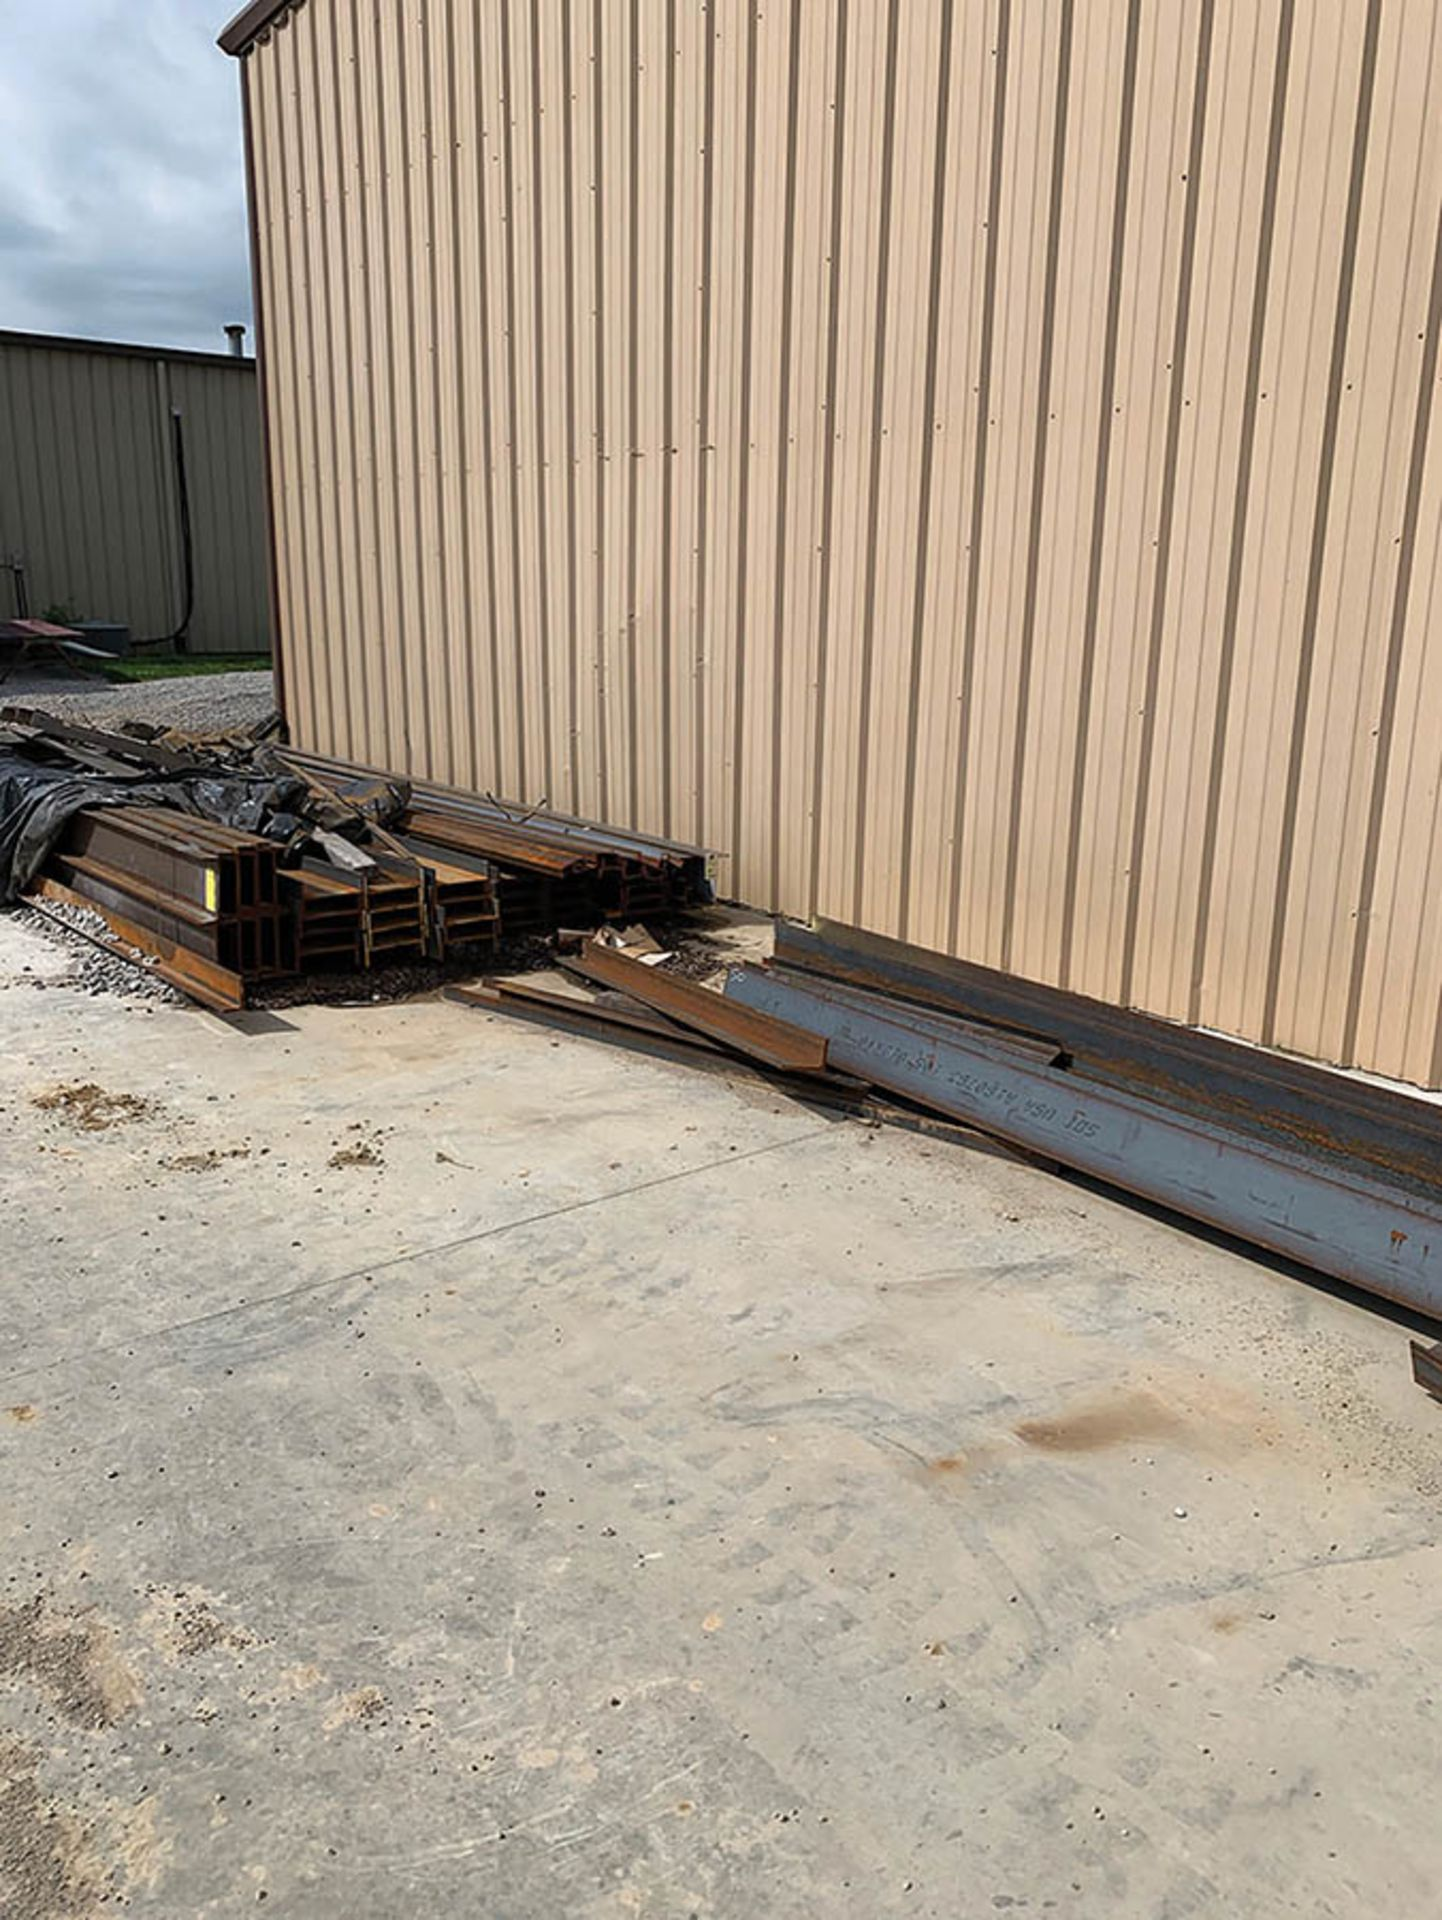 Lot 329 - ASSORTED STEEL CHANNEL AND I-BEAM